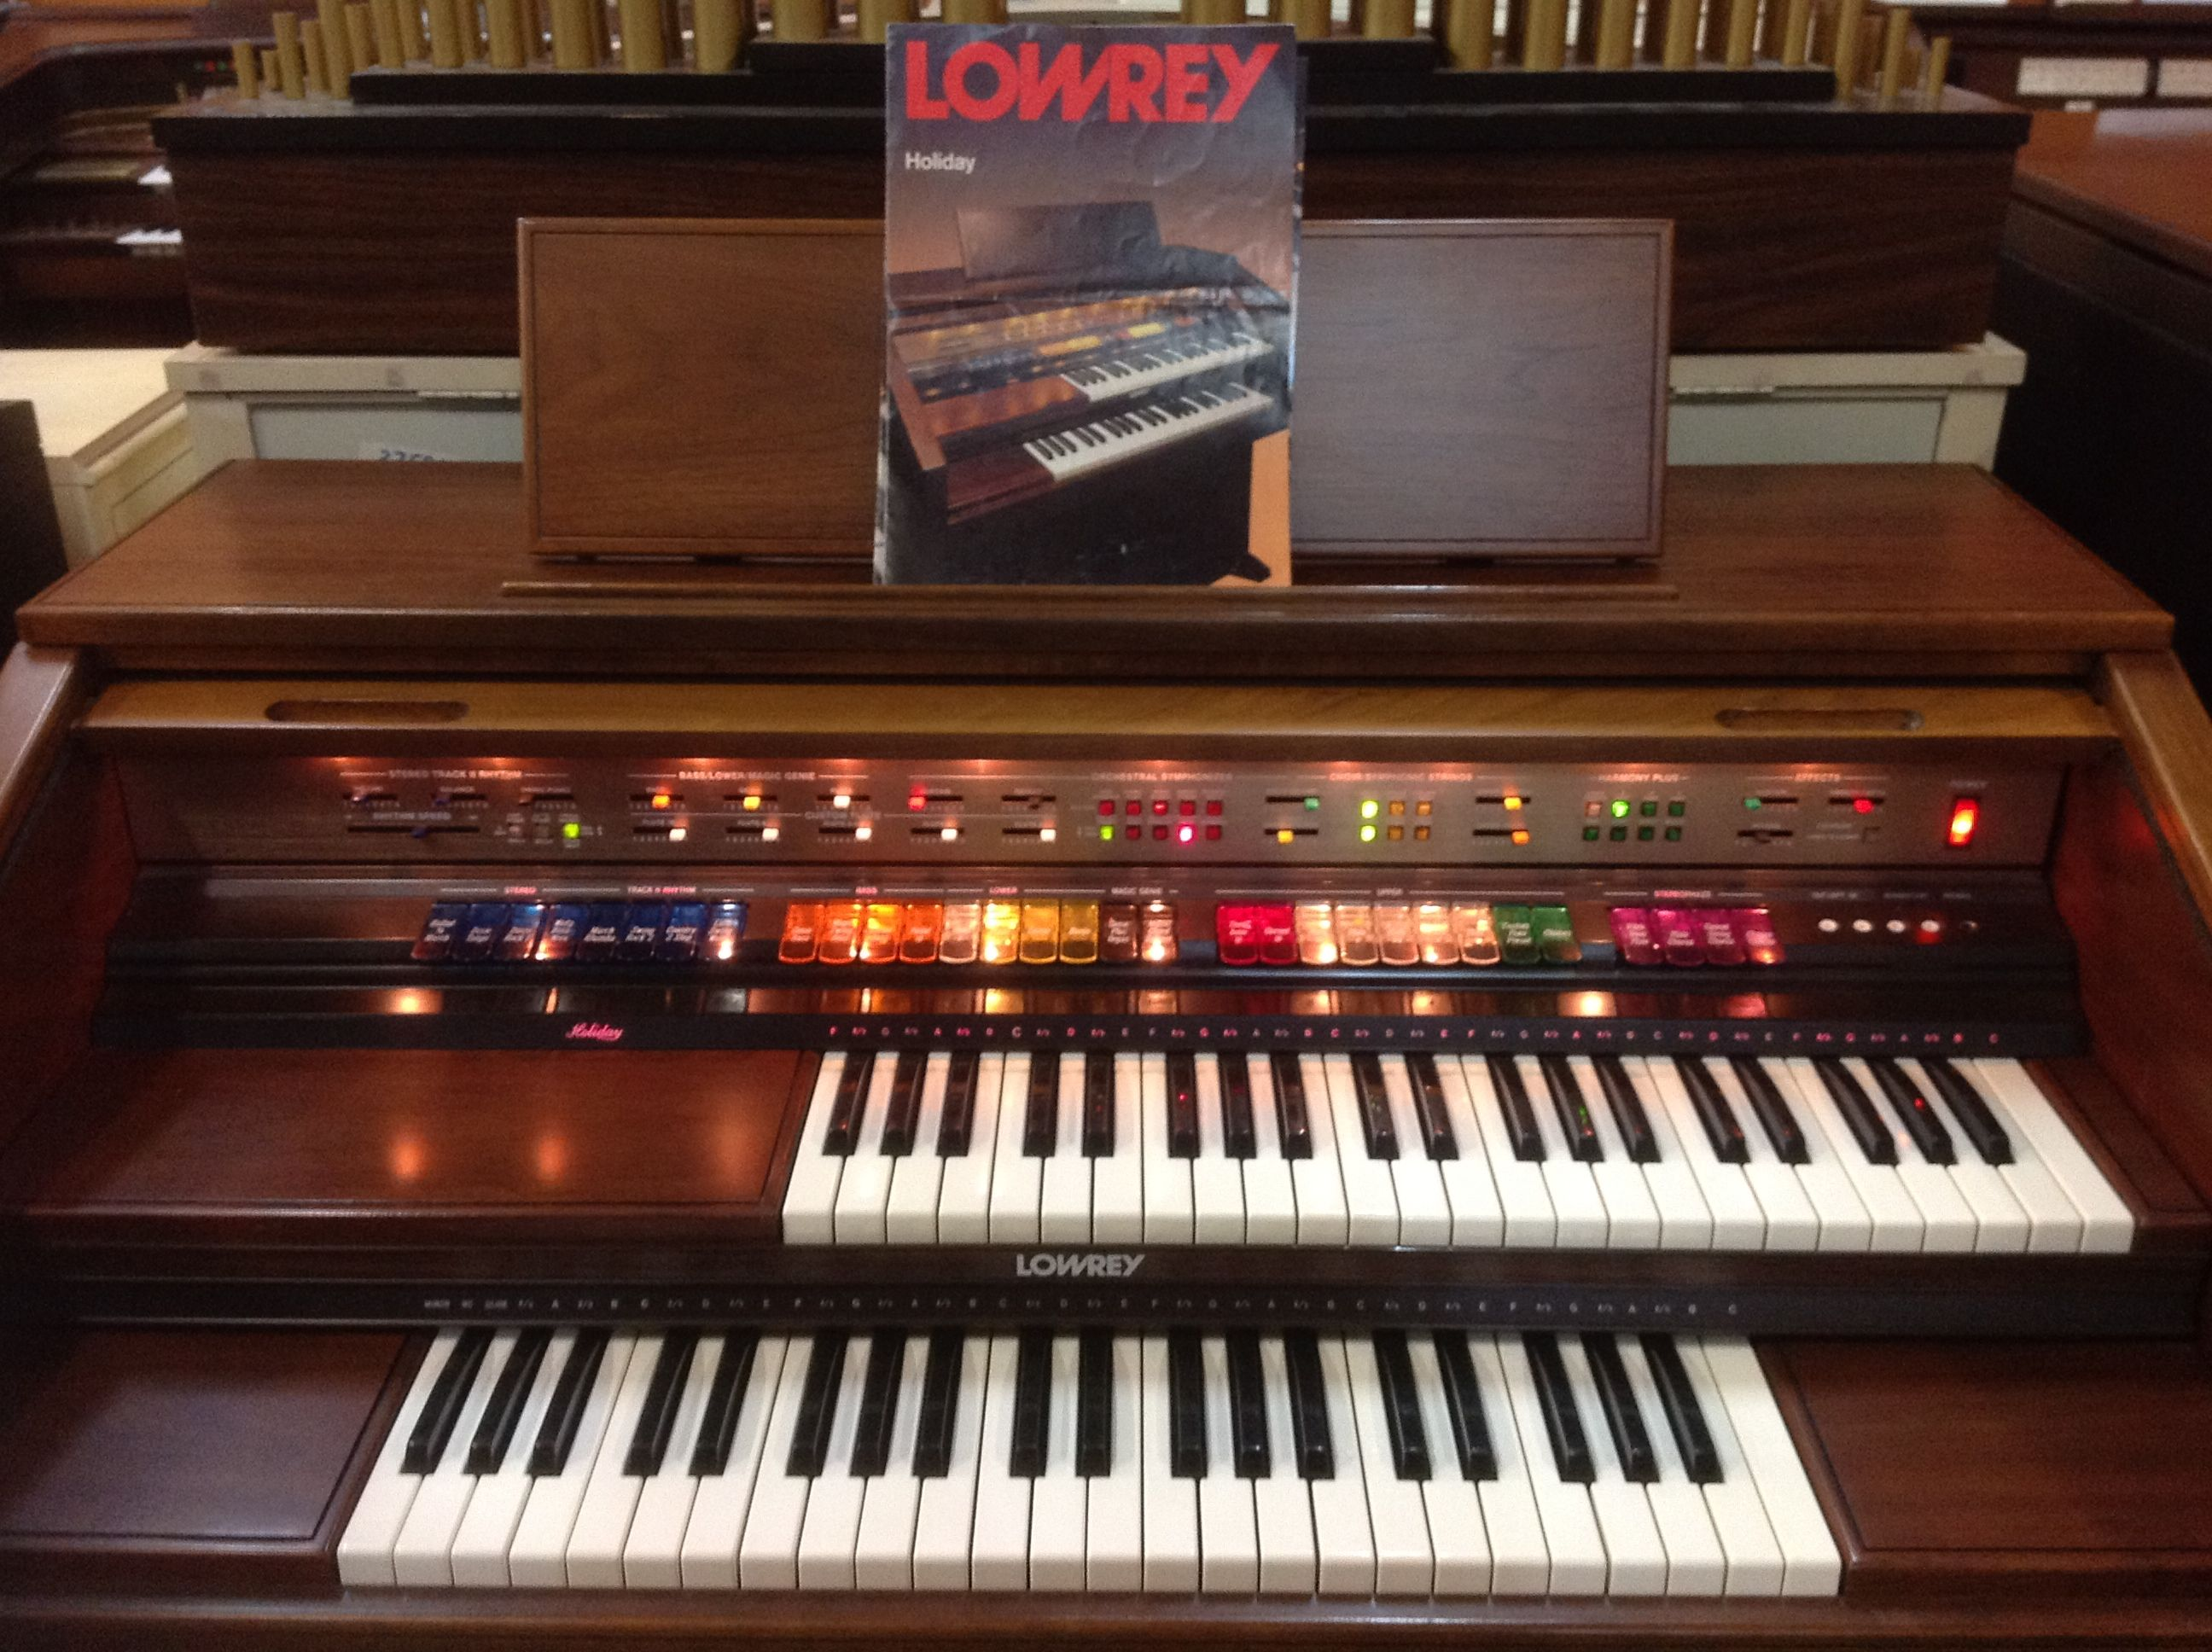 lowrey holiday d350 organ this model is one of our favourites from rh pinterest com GS1 Lowrey Genie Organ Lowery Organ Holiday